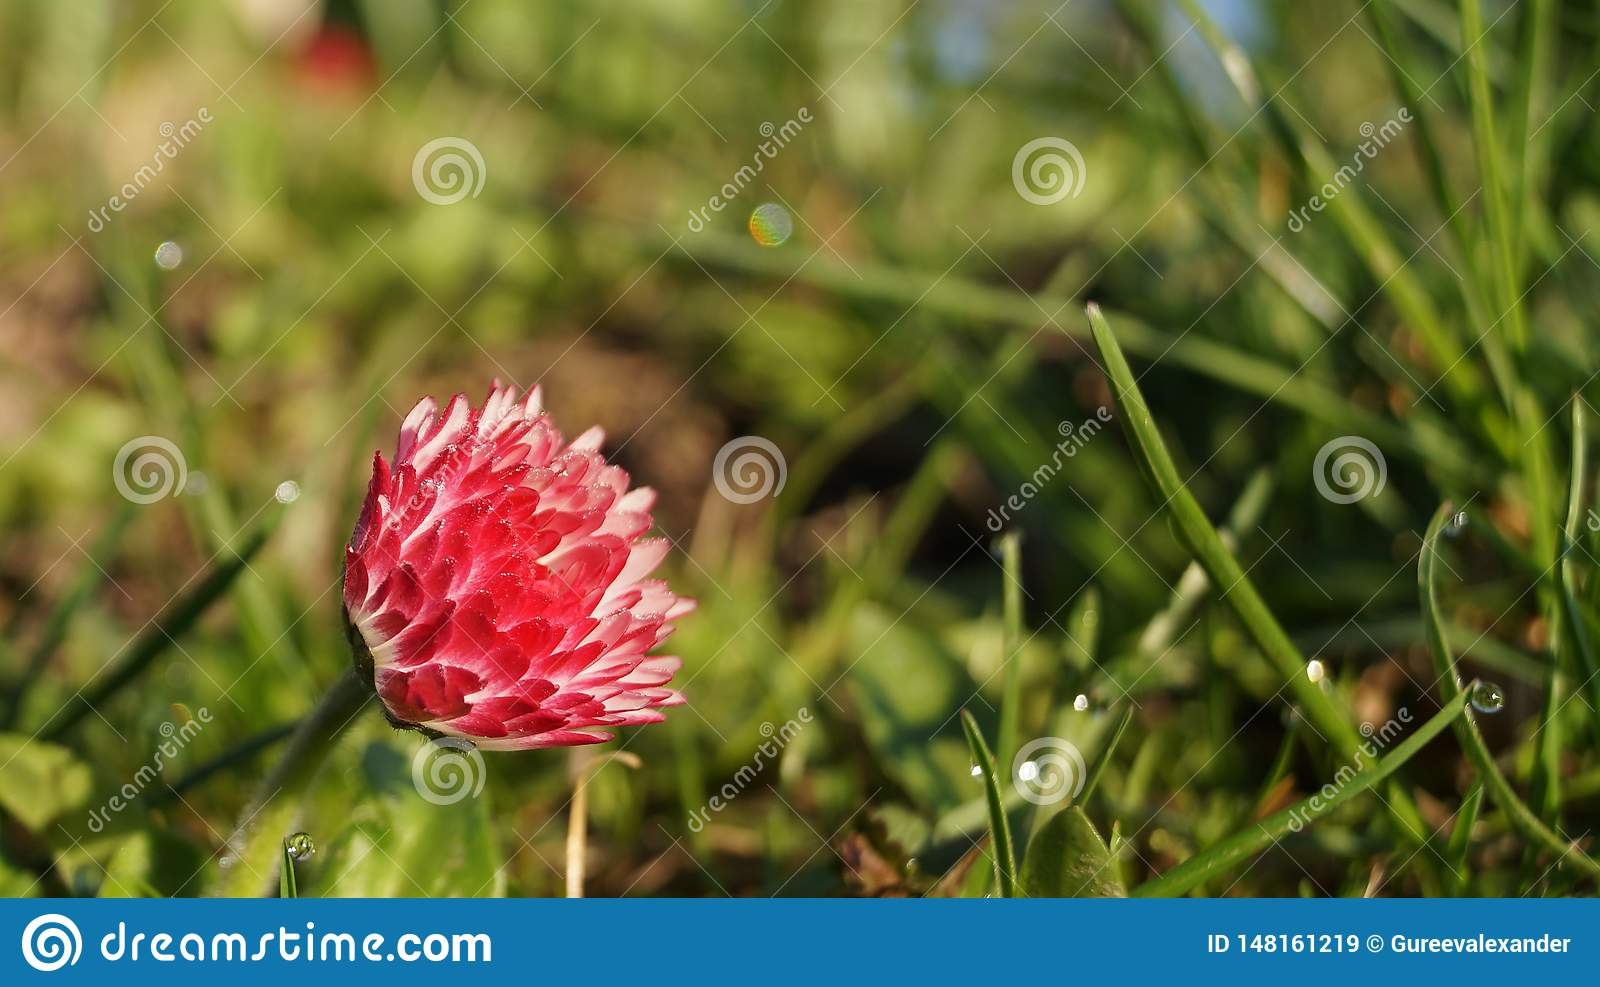 Bright red flower on the background of young green grass.